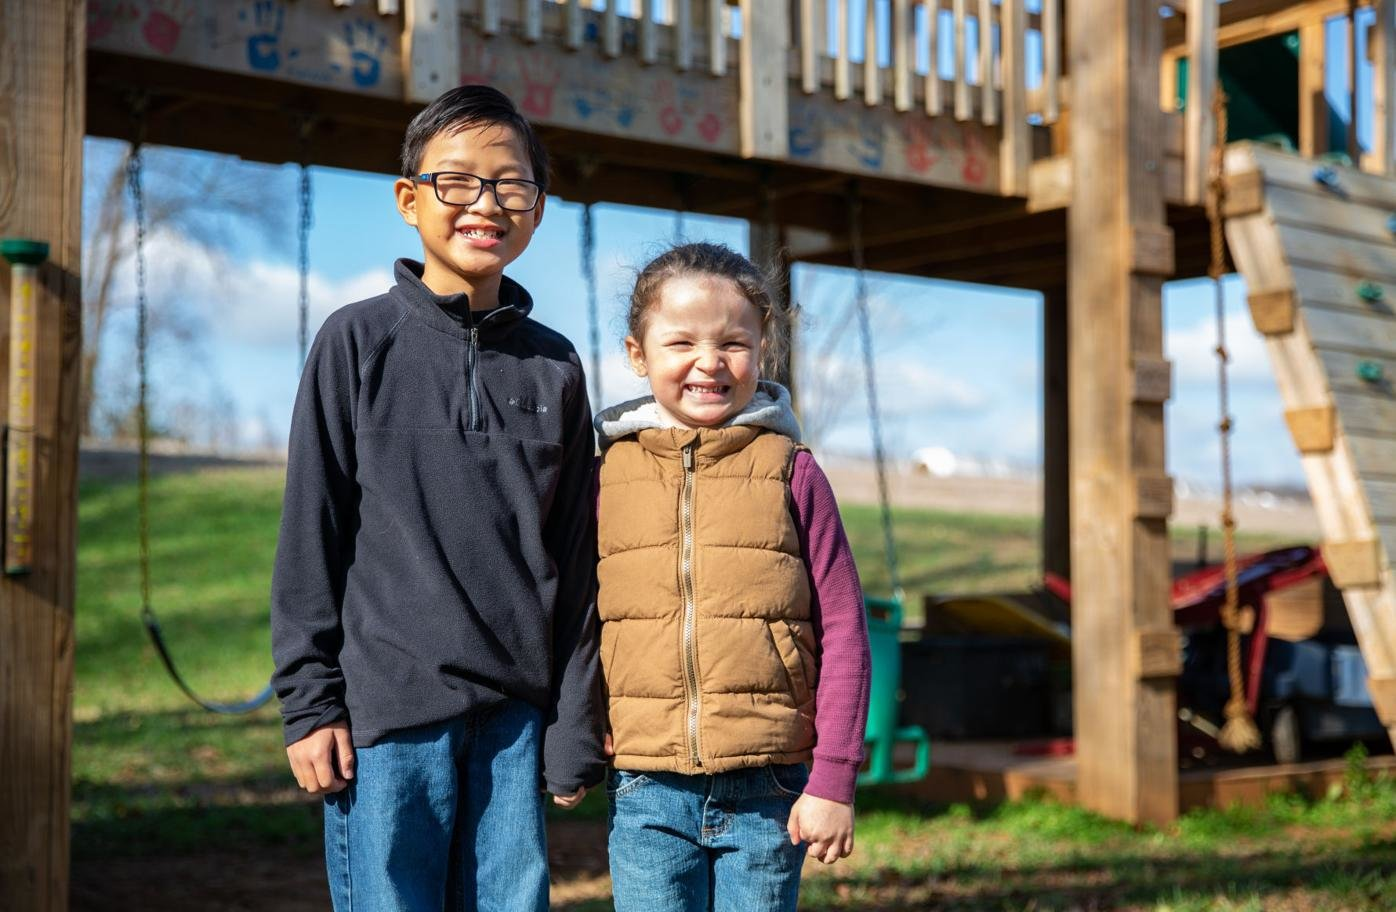 Tag Poynter (right), 6, and his brother Trey ,9, play Monday on the swing set they have in their back yard, Nov. 23, 2020. Josh and Monica Poynter adopted Trey in January 2020 after finding out that he has the same rare bleeding disorder Tag was born with, hemophilia A.